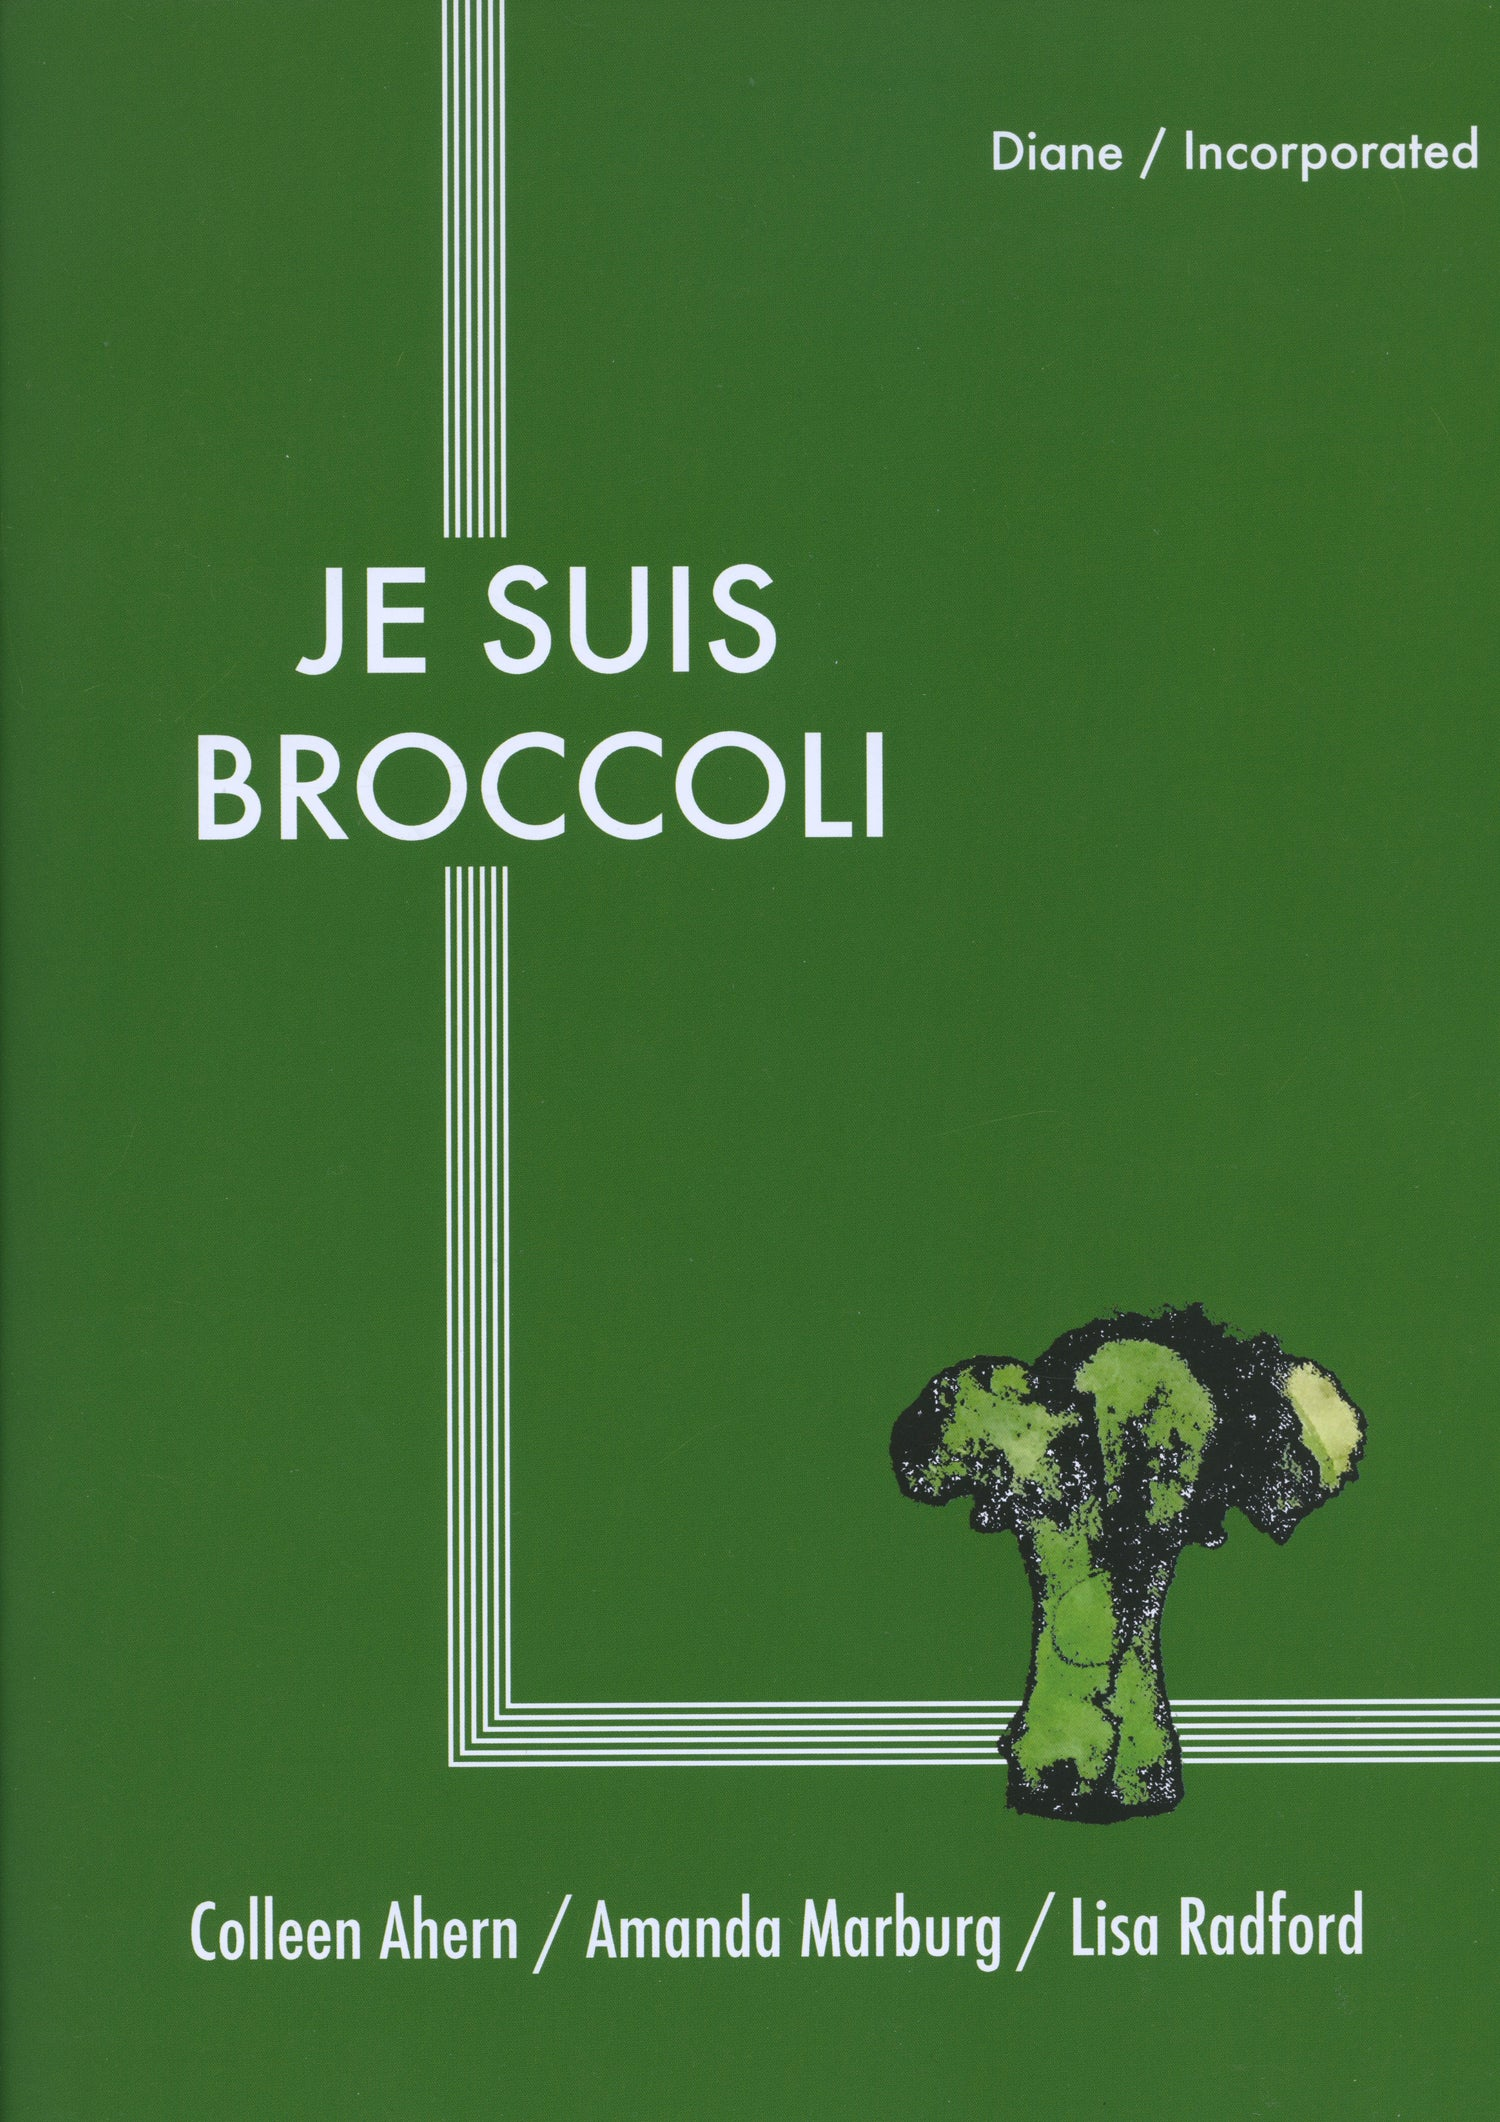 Image of Je Suis Broccoli - Colleen Ahern, Amanda Marburg and Lisa Radford